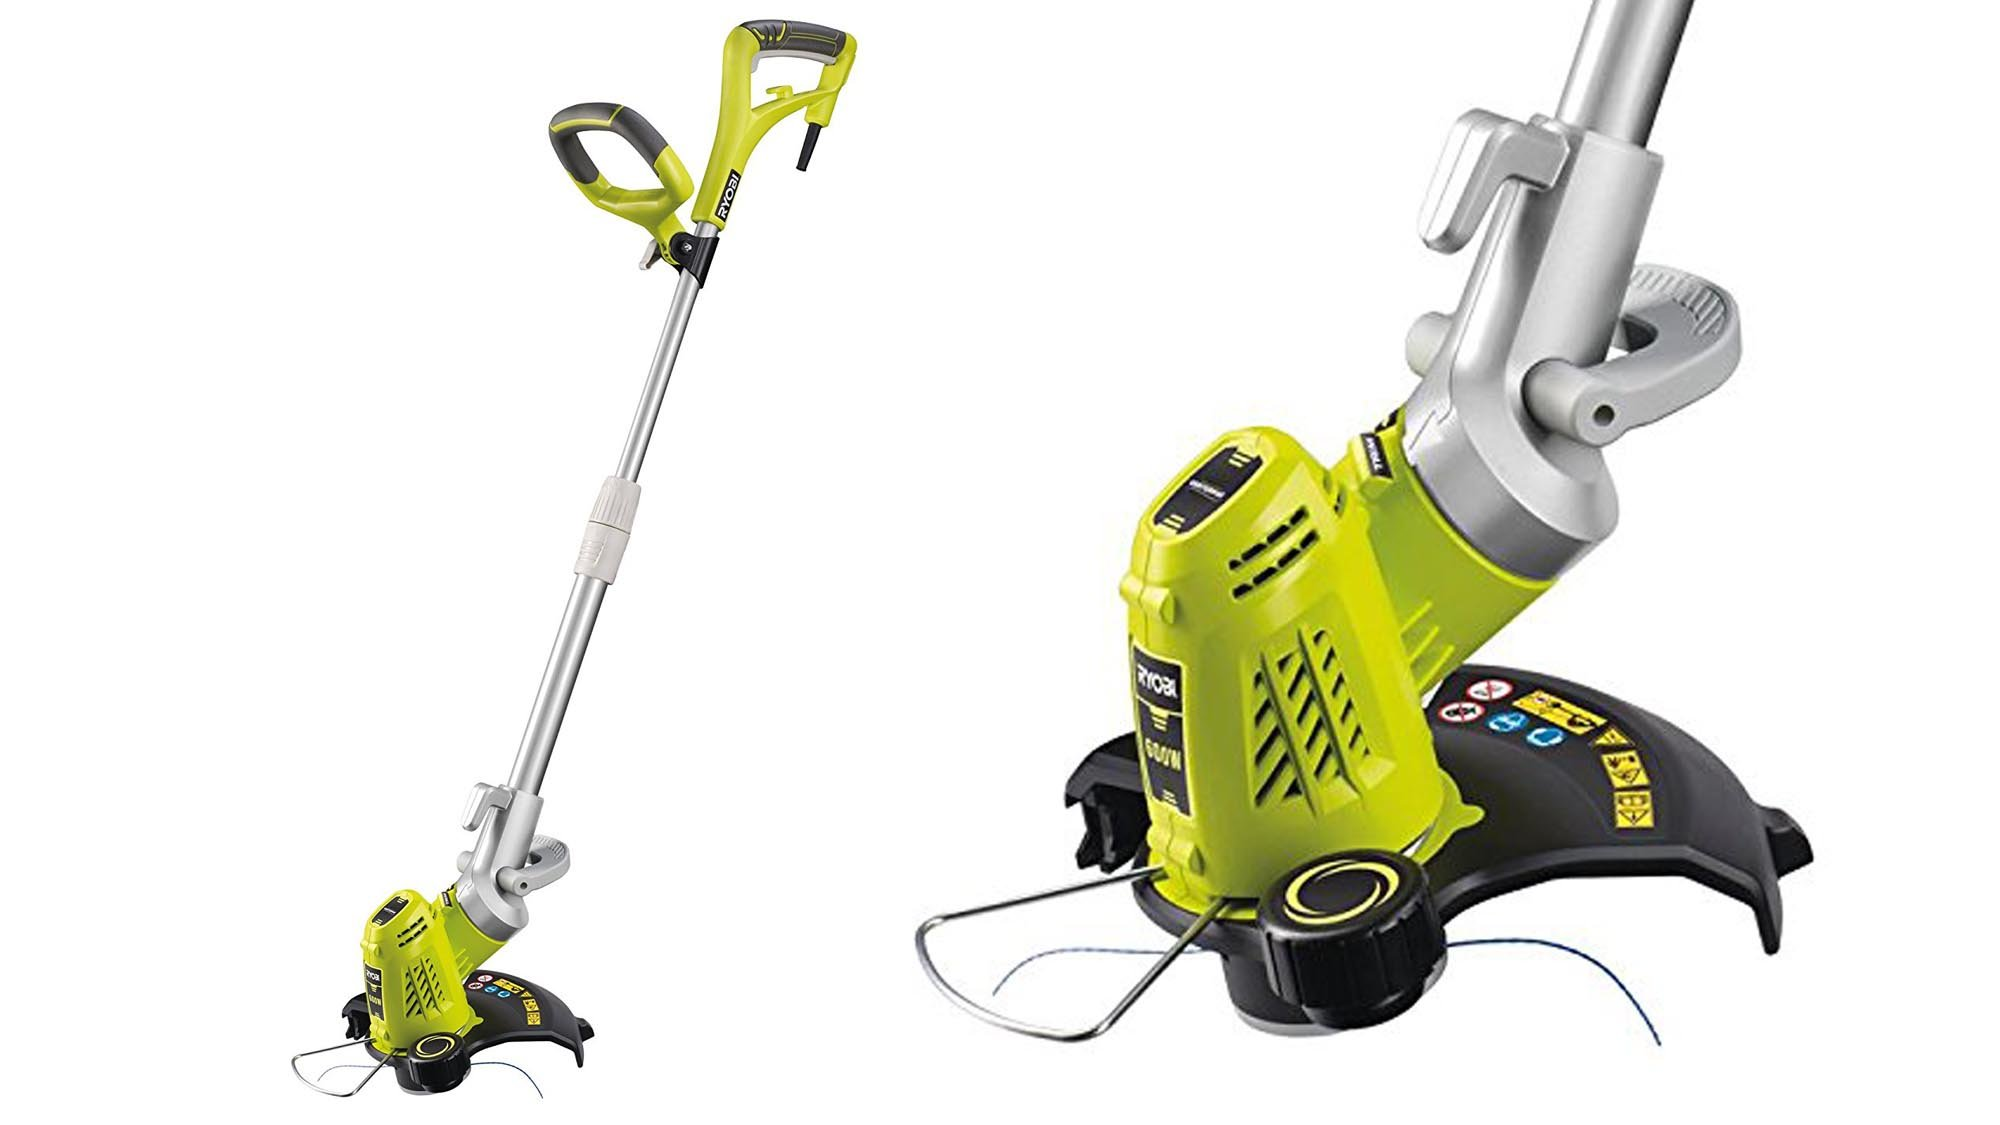 Ryobi Strimmer Spare Parts Uk Rh750 Hedge Trimmer Spares Diagram Shoulders Of Shoreham Best Grass The Electric Cordless And Petrol Trimmers